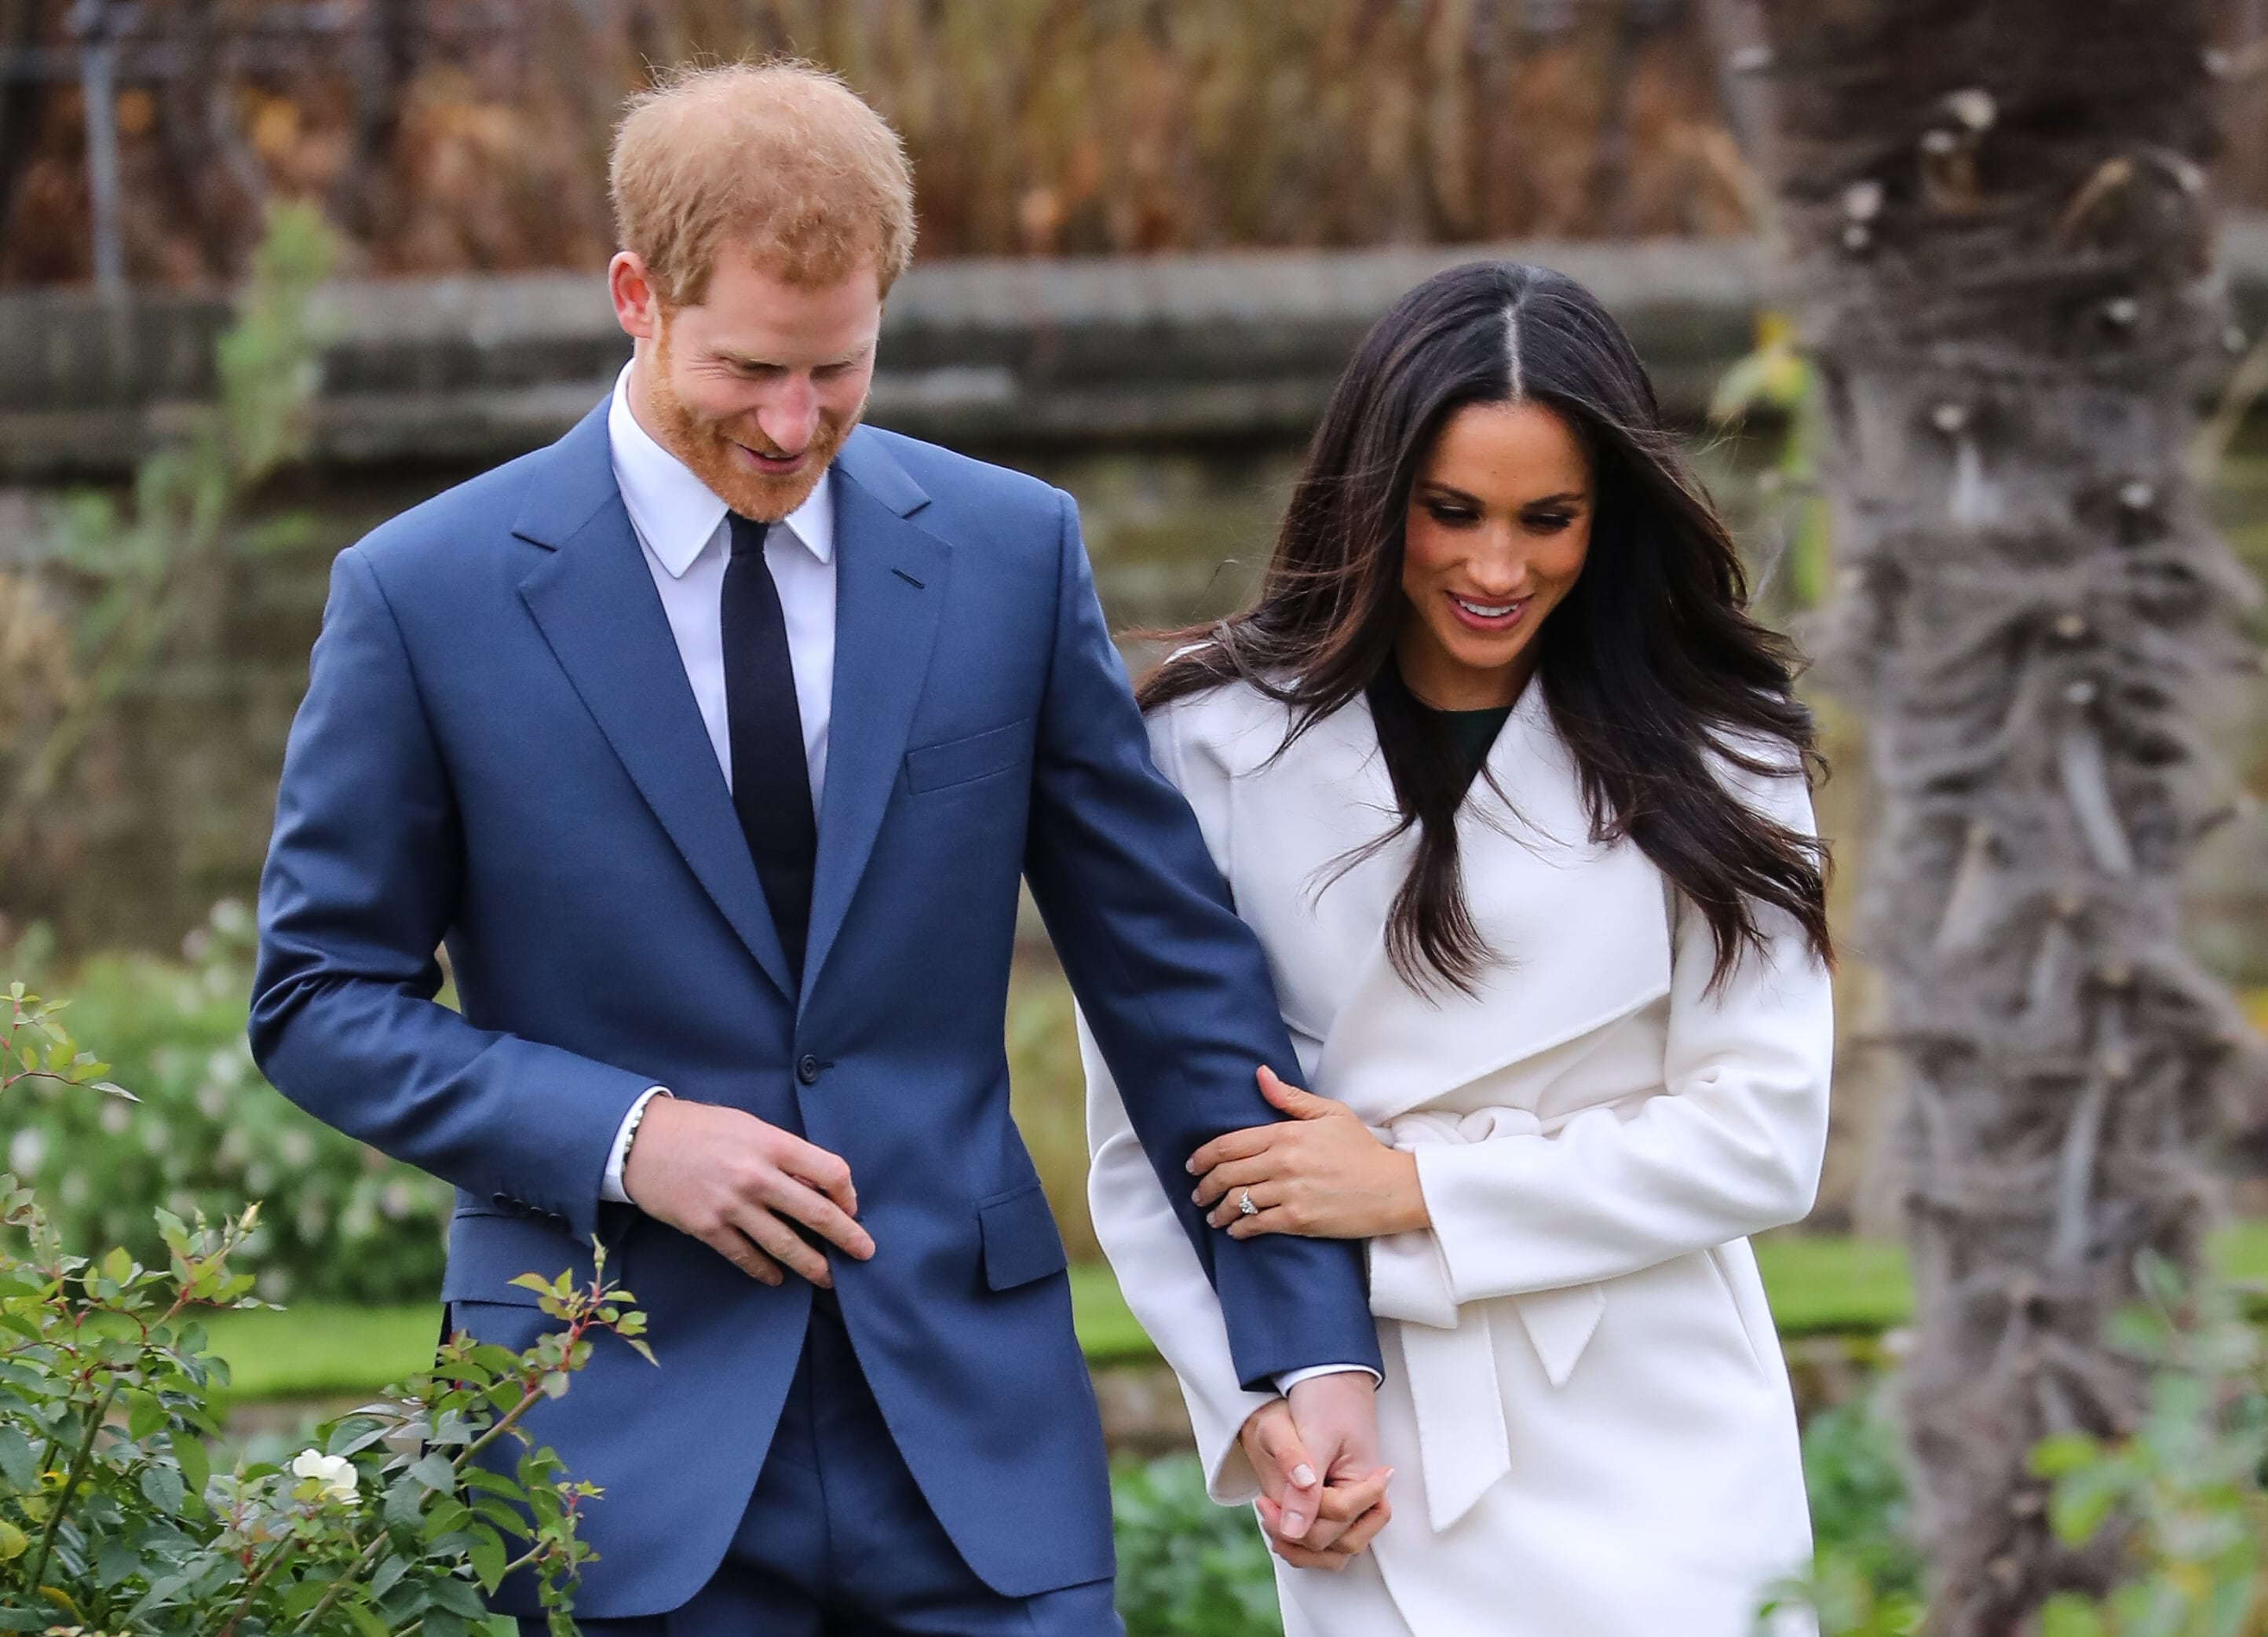 The next royal wedding has a date—May 19. Prince Harry and Meghan Markle will be starring in what surely will be *the* wedding of the year. (Photo: WENN)